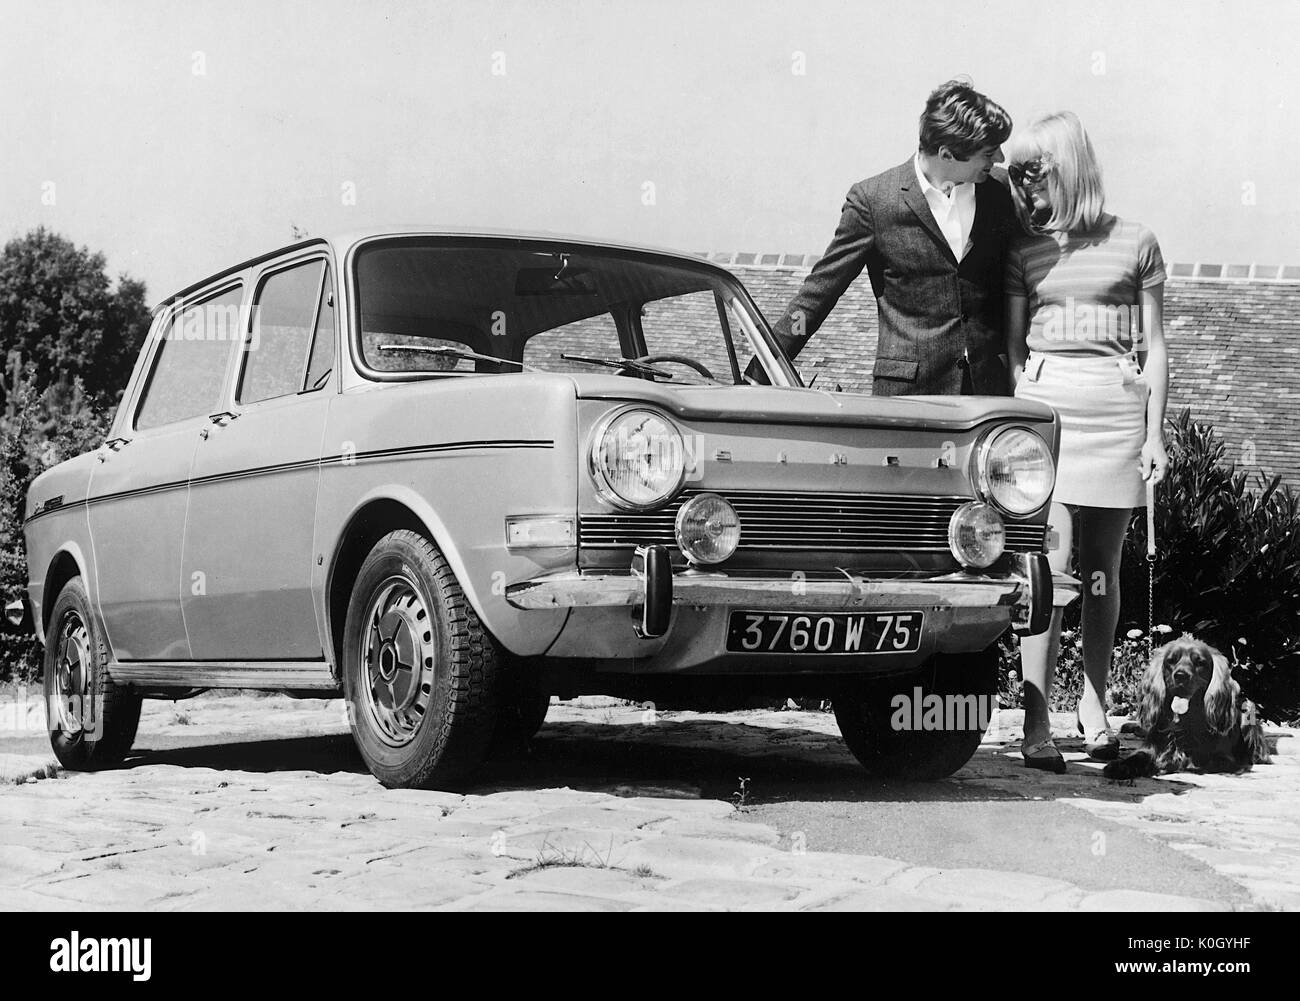 Car Models Black And White Stock Photos Images Alamy 1951 Simca Wiring Diagram 1968 1000 Special Image